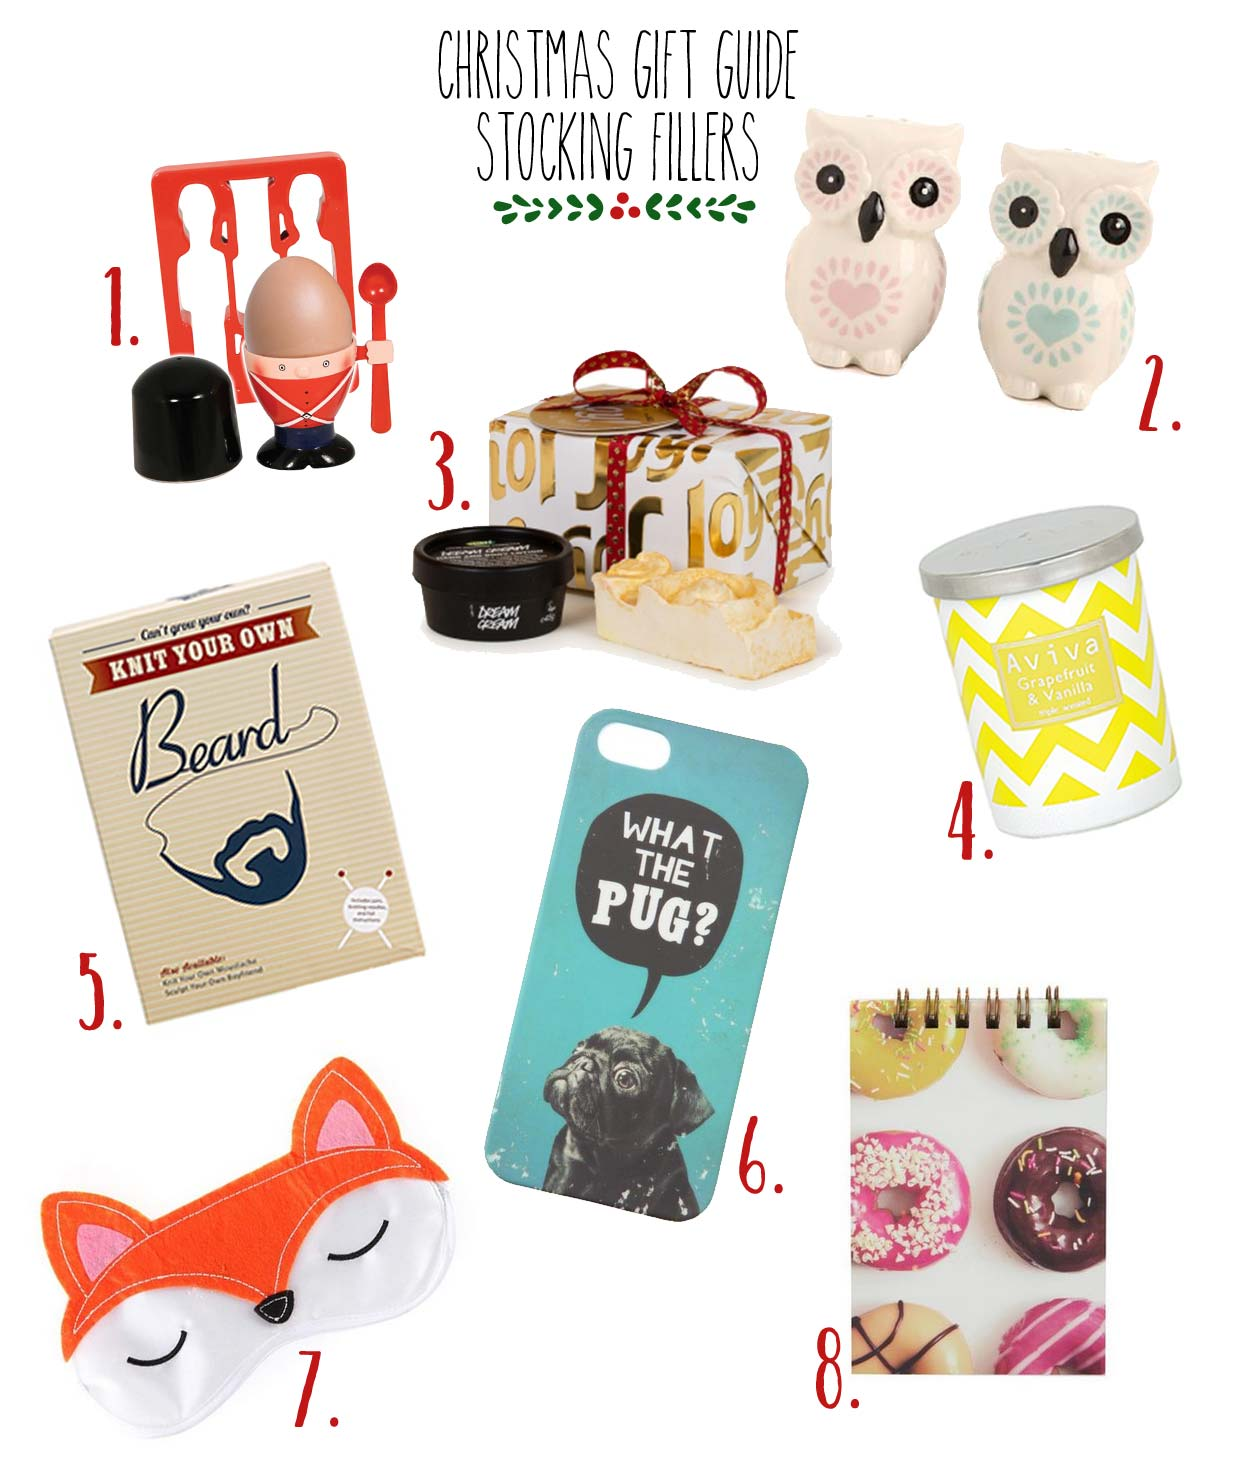 gift guide st fillers-01